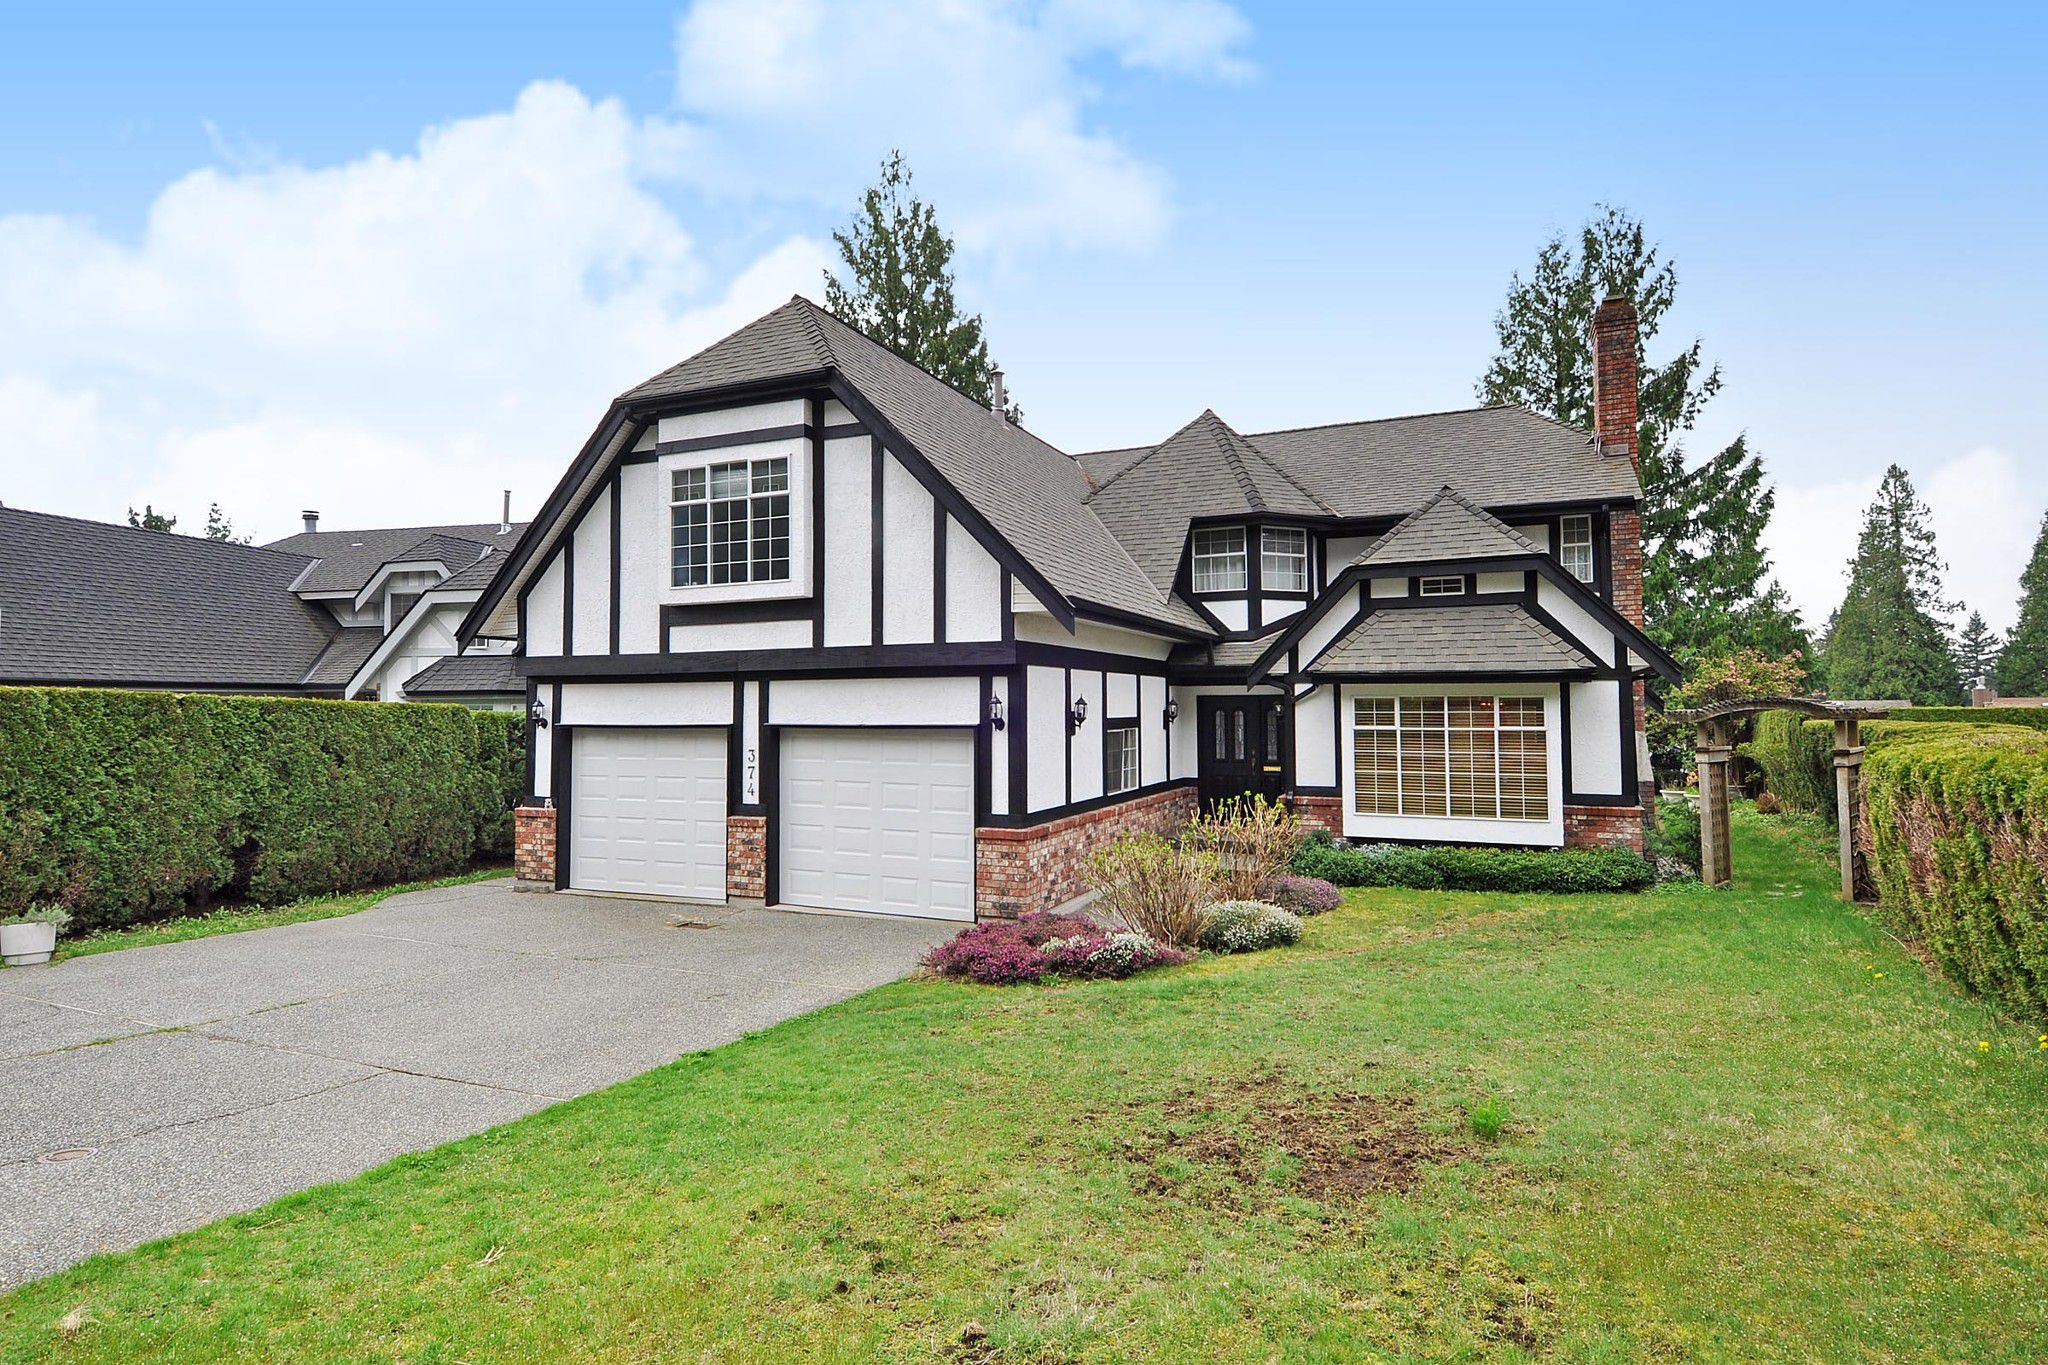 Main Photo: 374 BALFOUR Drive in Coquitlam: Coquitlam East House for sale : MLS®# R2357437